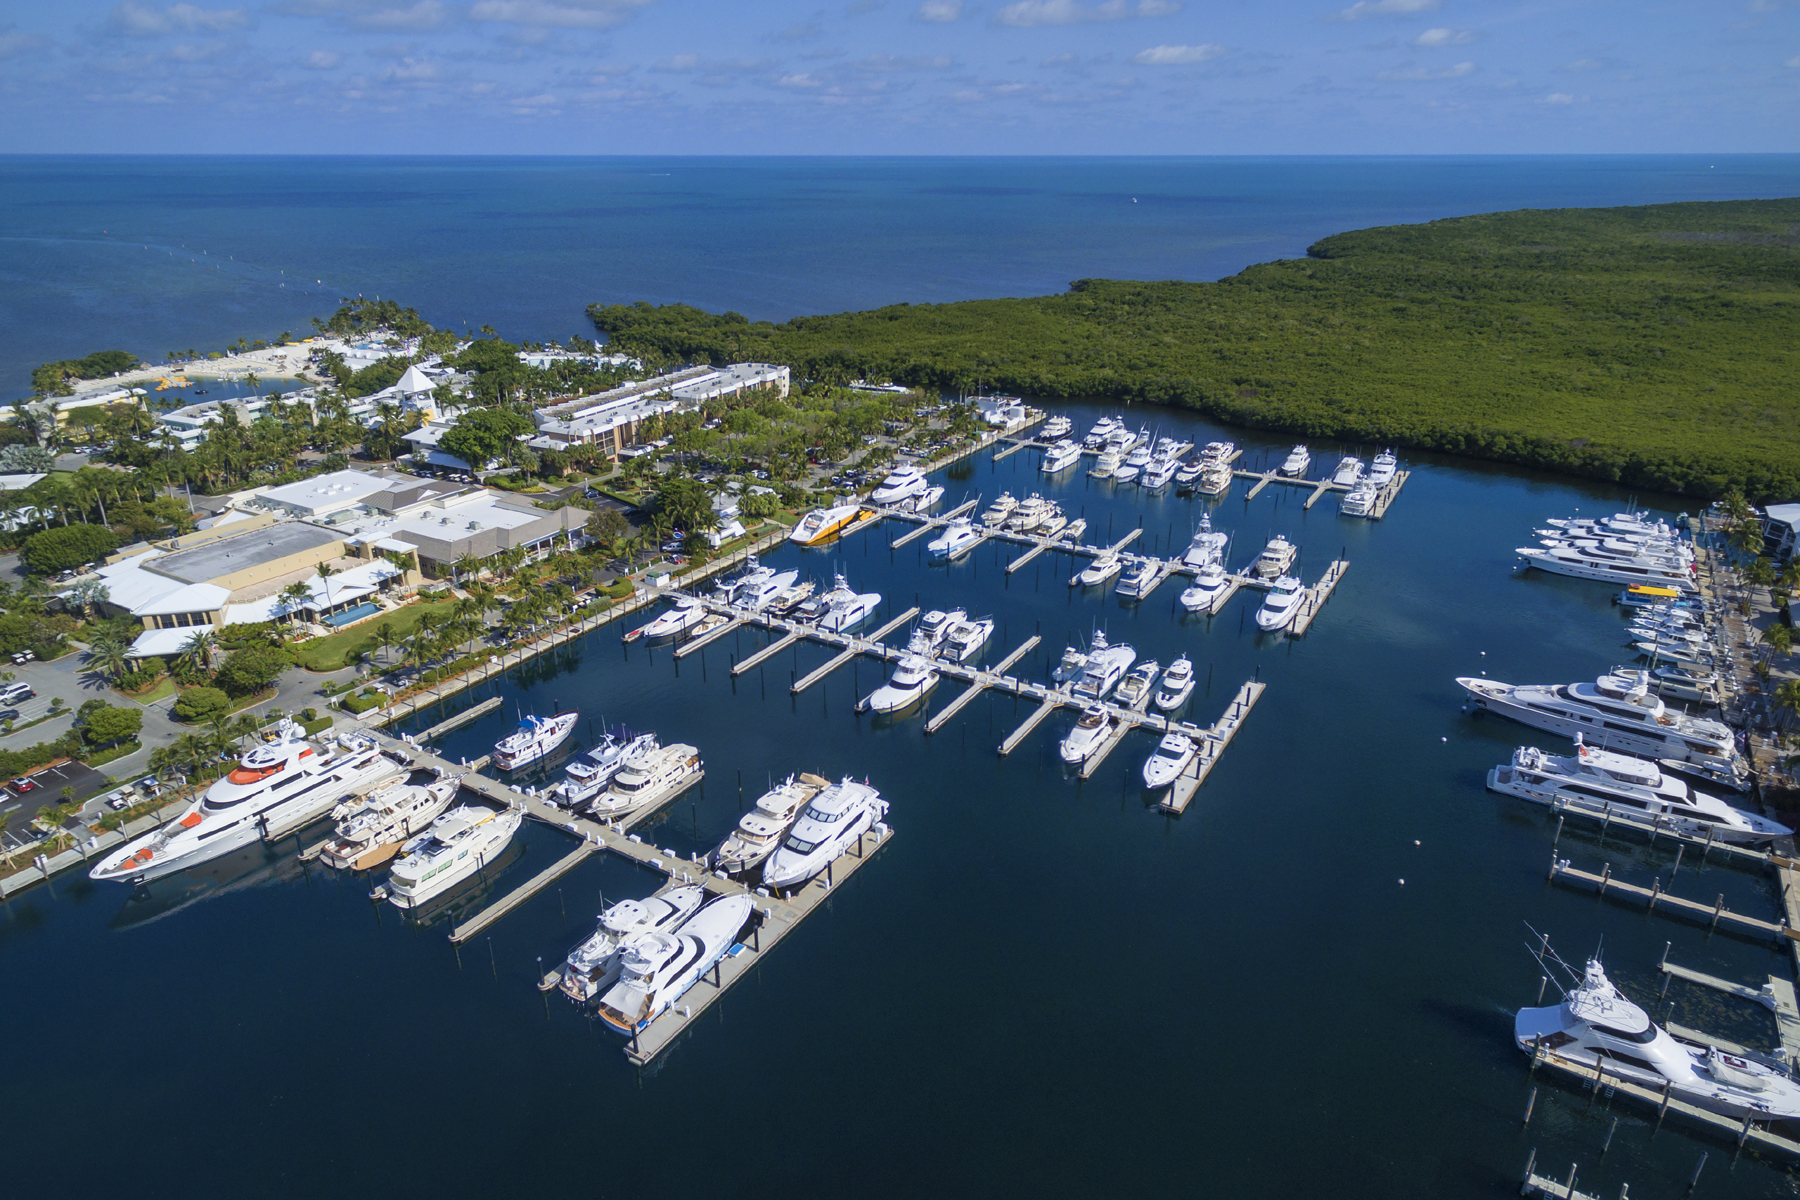 その他の住居 のために 売買 アット Ocean Reef Marina Offers Full Yacht Services 201 Ocean Reef Drive, Dock FS-25, Ocean Reef Community, Key Largo, フロリダ, 33037 アメリカ合衆国